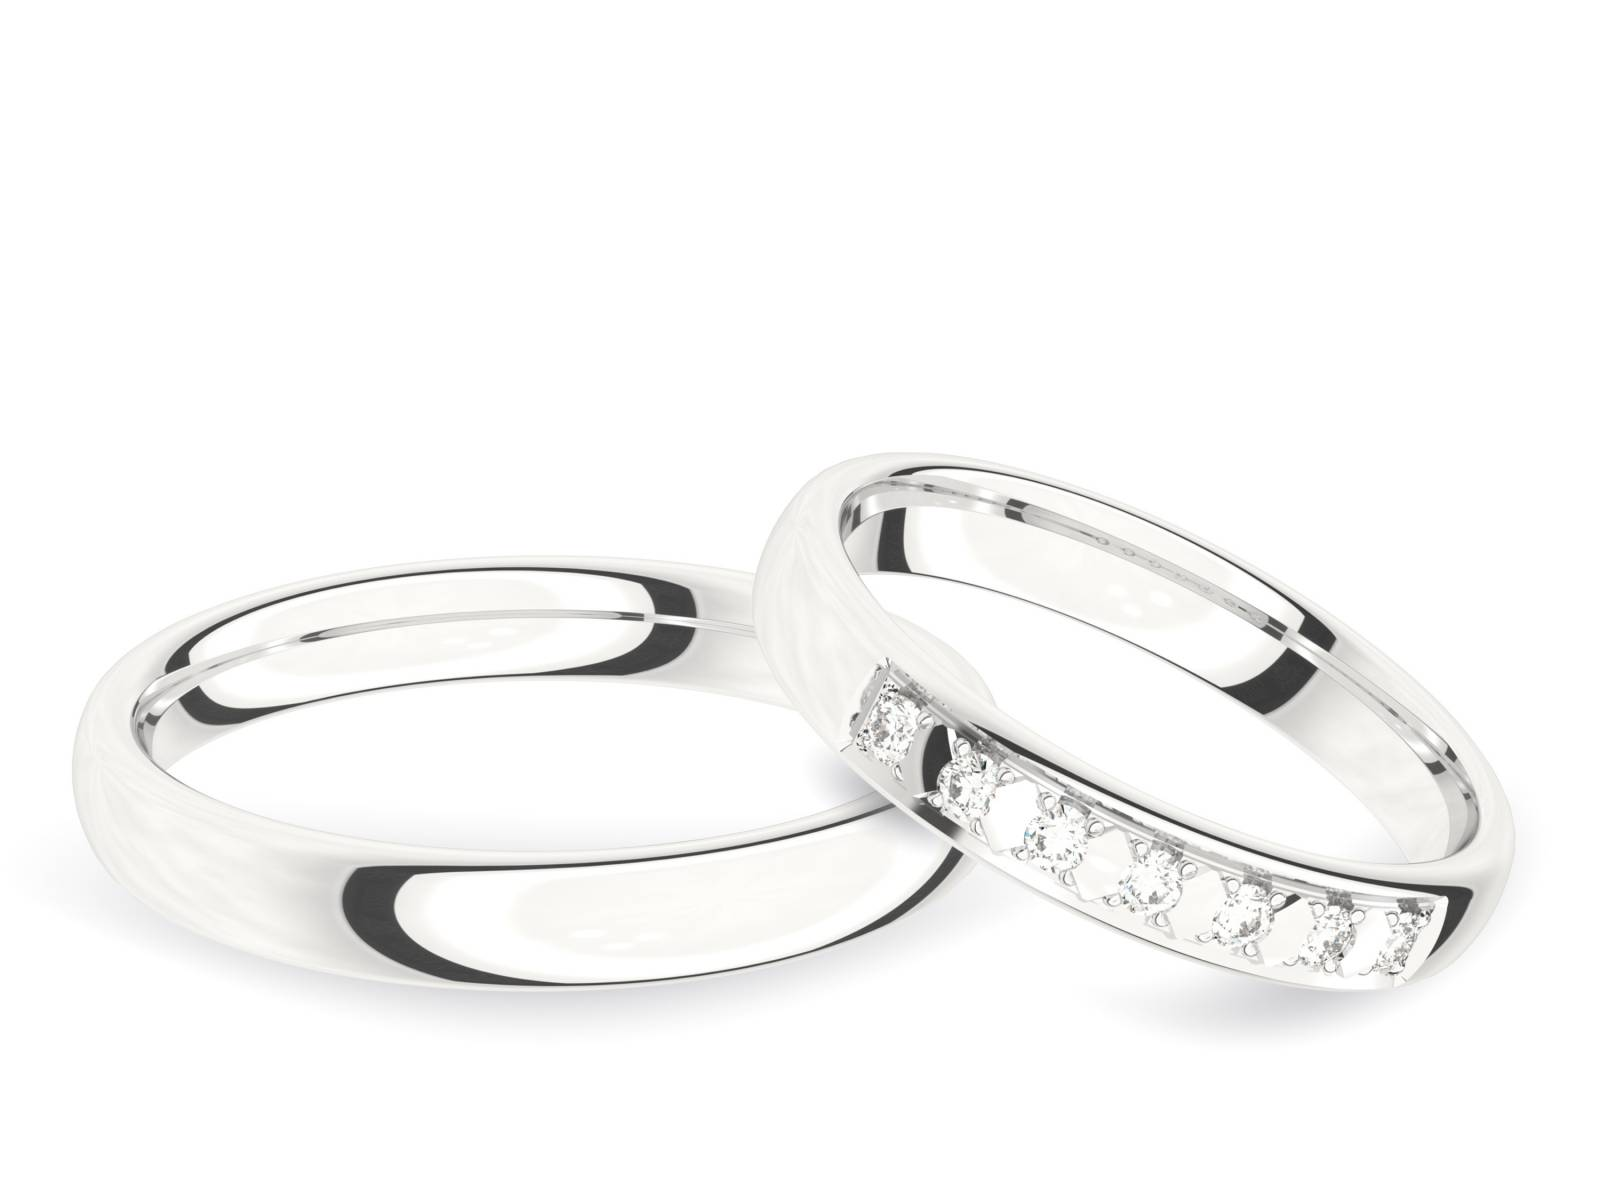 Juwelier Jan Maes - Trouwringen - Verlovingsringen - Juwelen - House of Weddings - 1